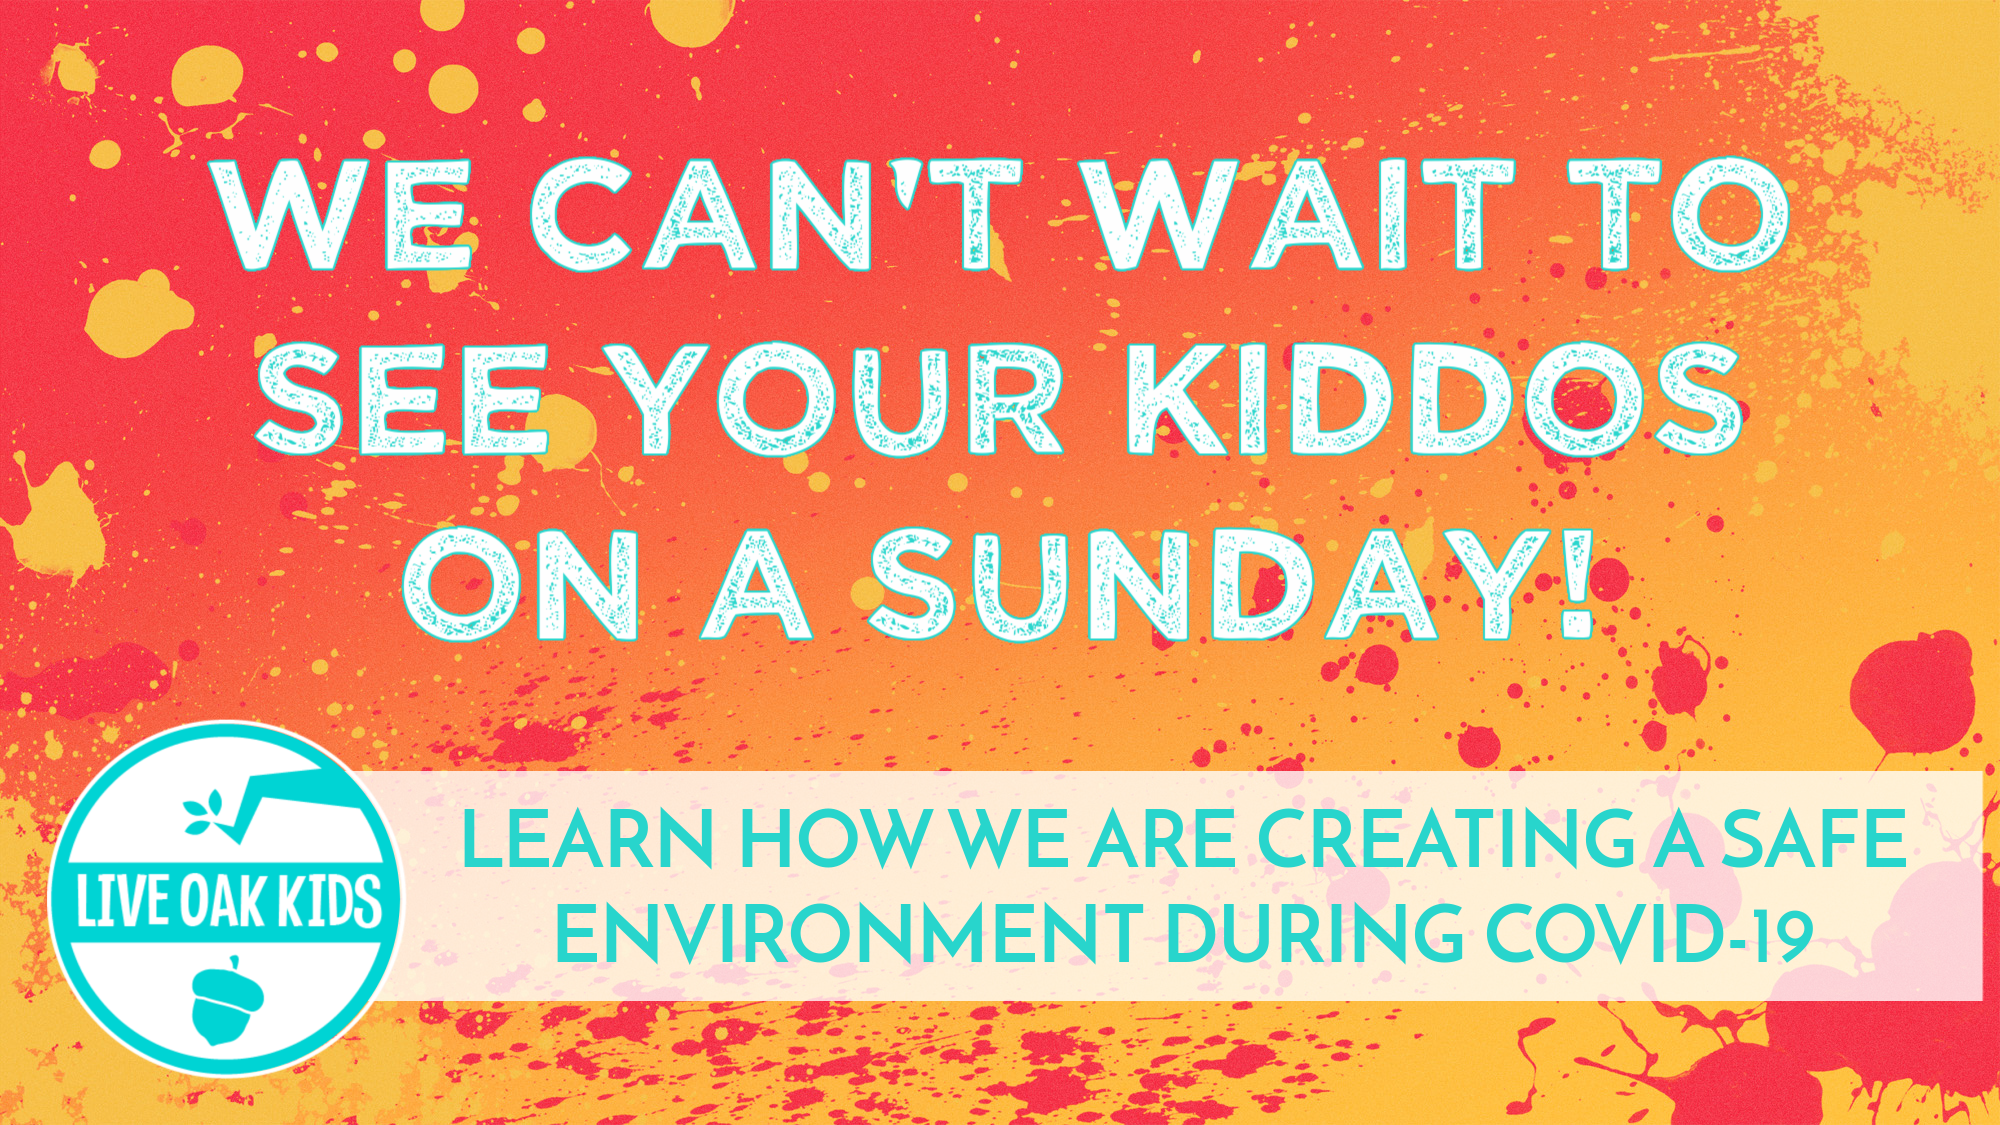 KIDS MINISTRY IN-PERSON ON SUNDAYS!